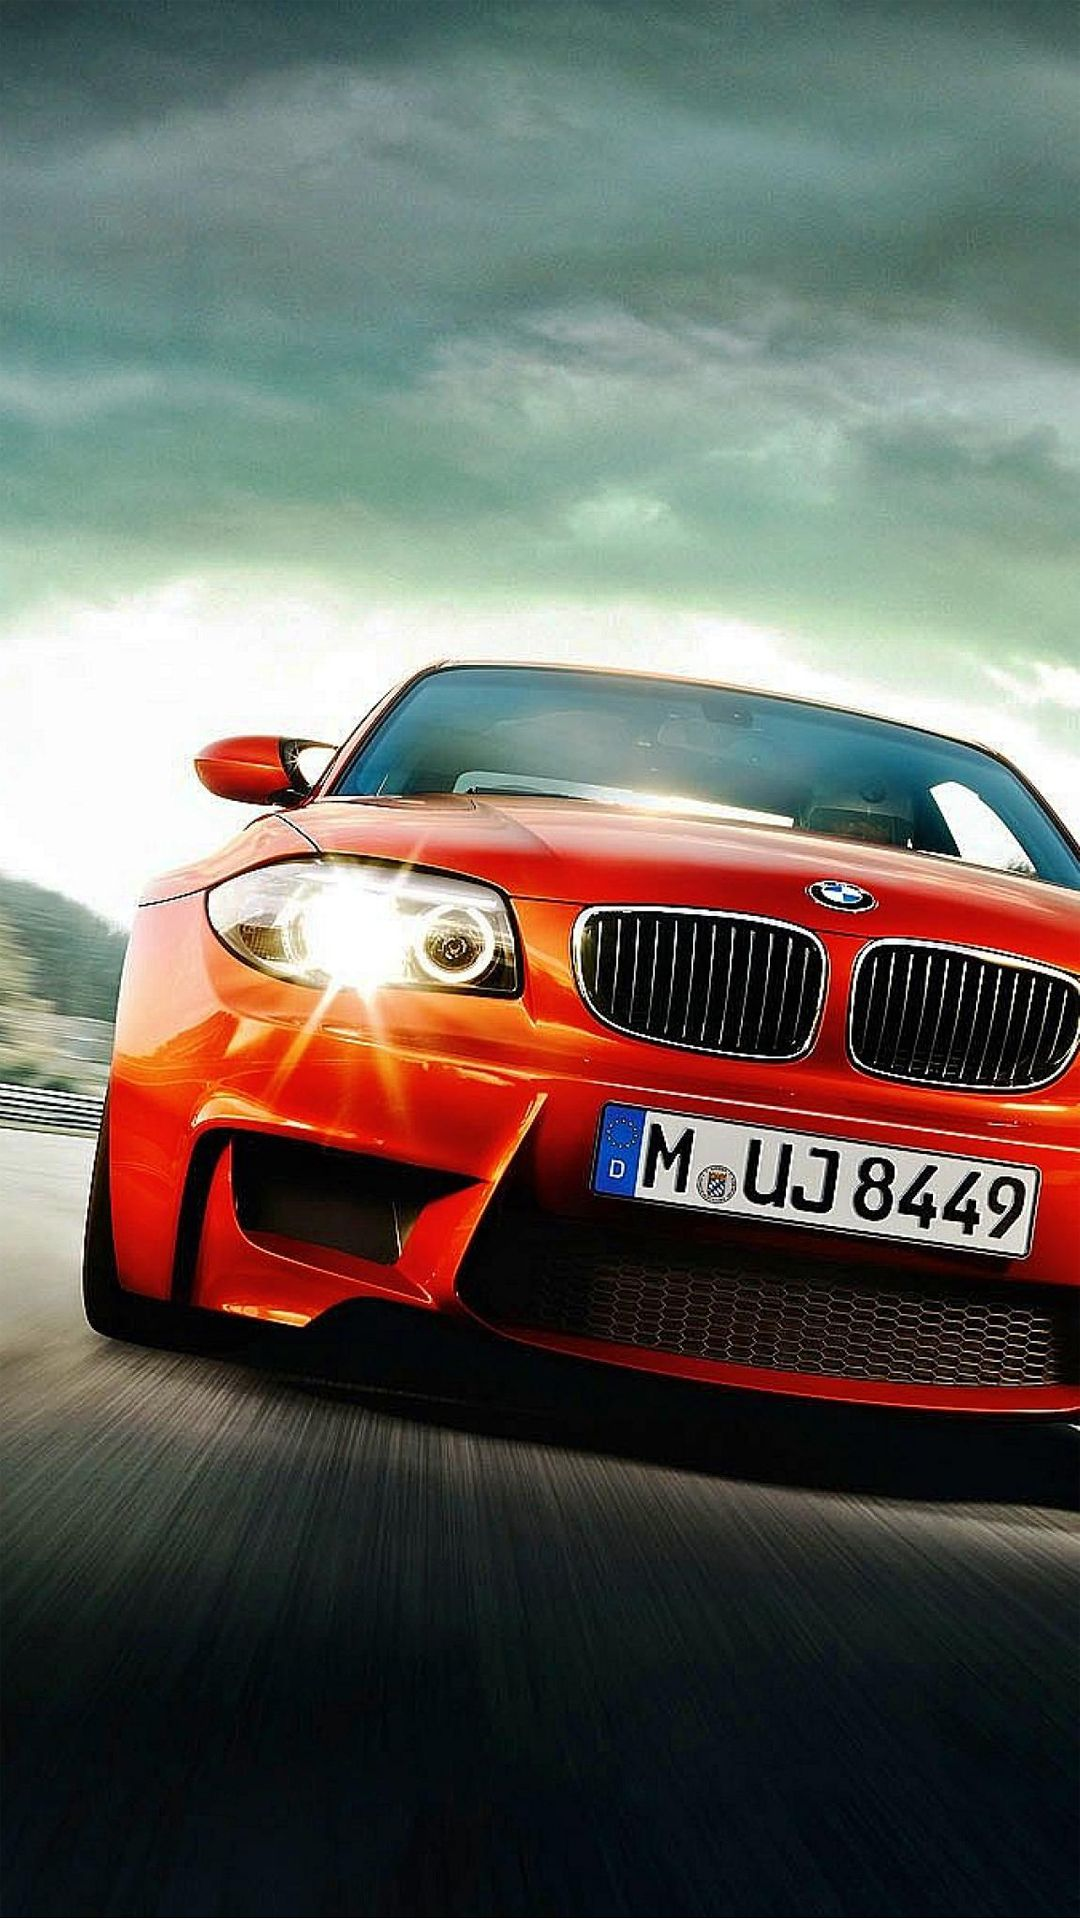 These are 5 Images about Car Wallpaper Download For